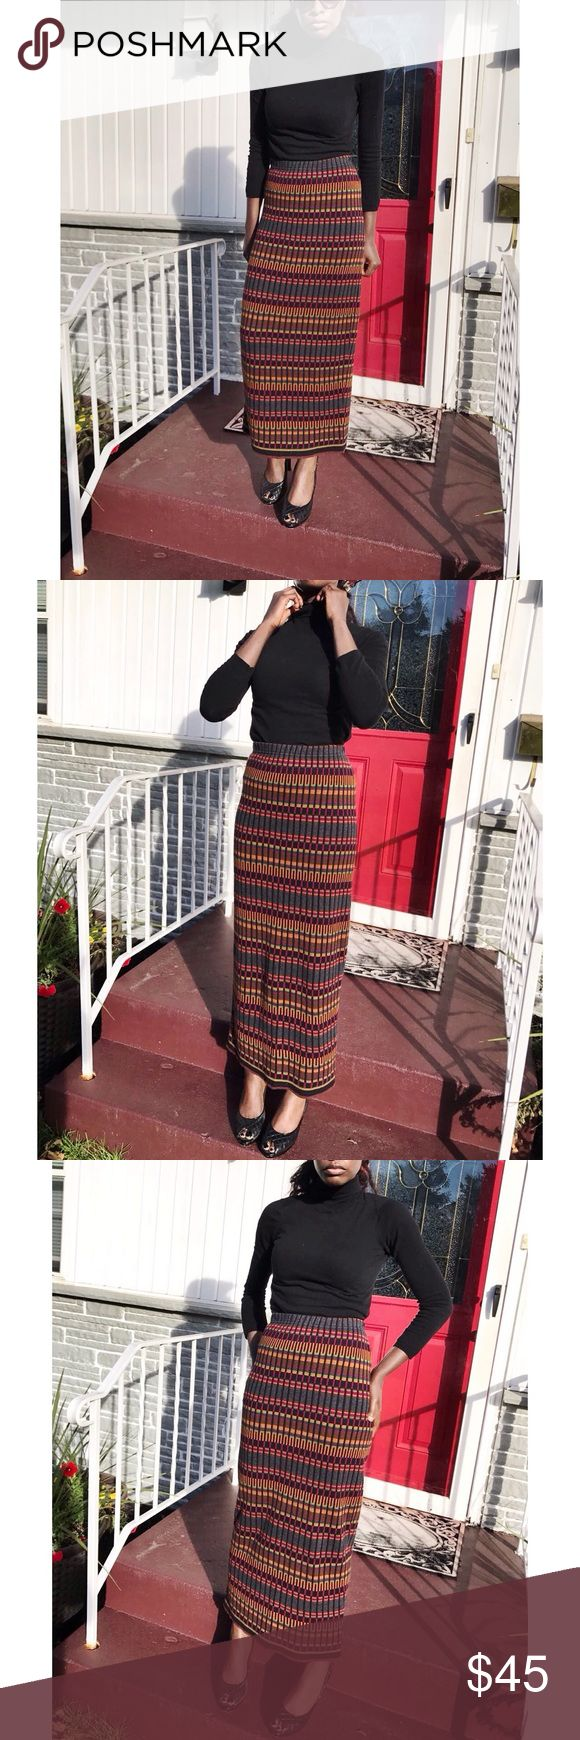 Joan Vass Knit Multicolor Tube Skirt Excellent condition. Spectacular. Size 1. Can wear as a tube dress. Made in USA 🇺🇸  Fabric:  100% Cotton Measurements: Waist: 13.5 inches across Hips: 20.5 inches across Length: 39 inches  Fabric is stretchy so may be able to fit a larger size. Joan Vass Skirts